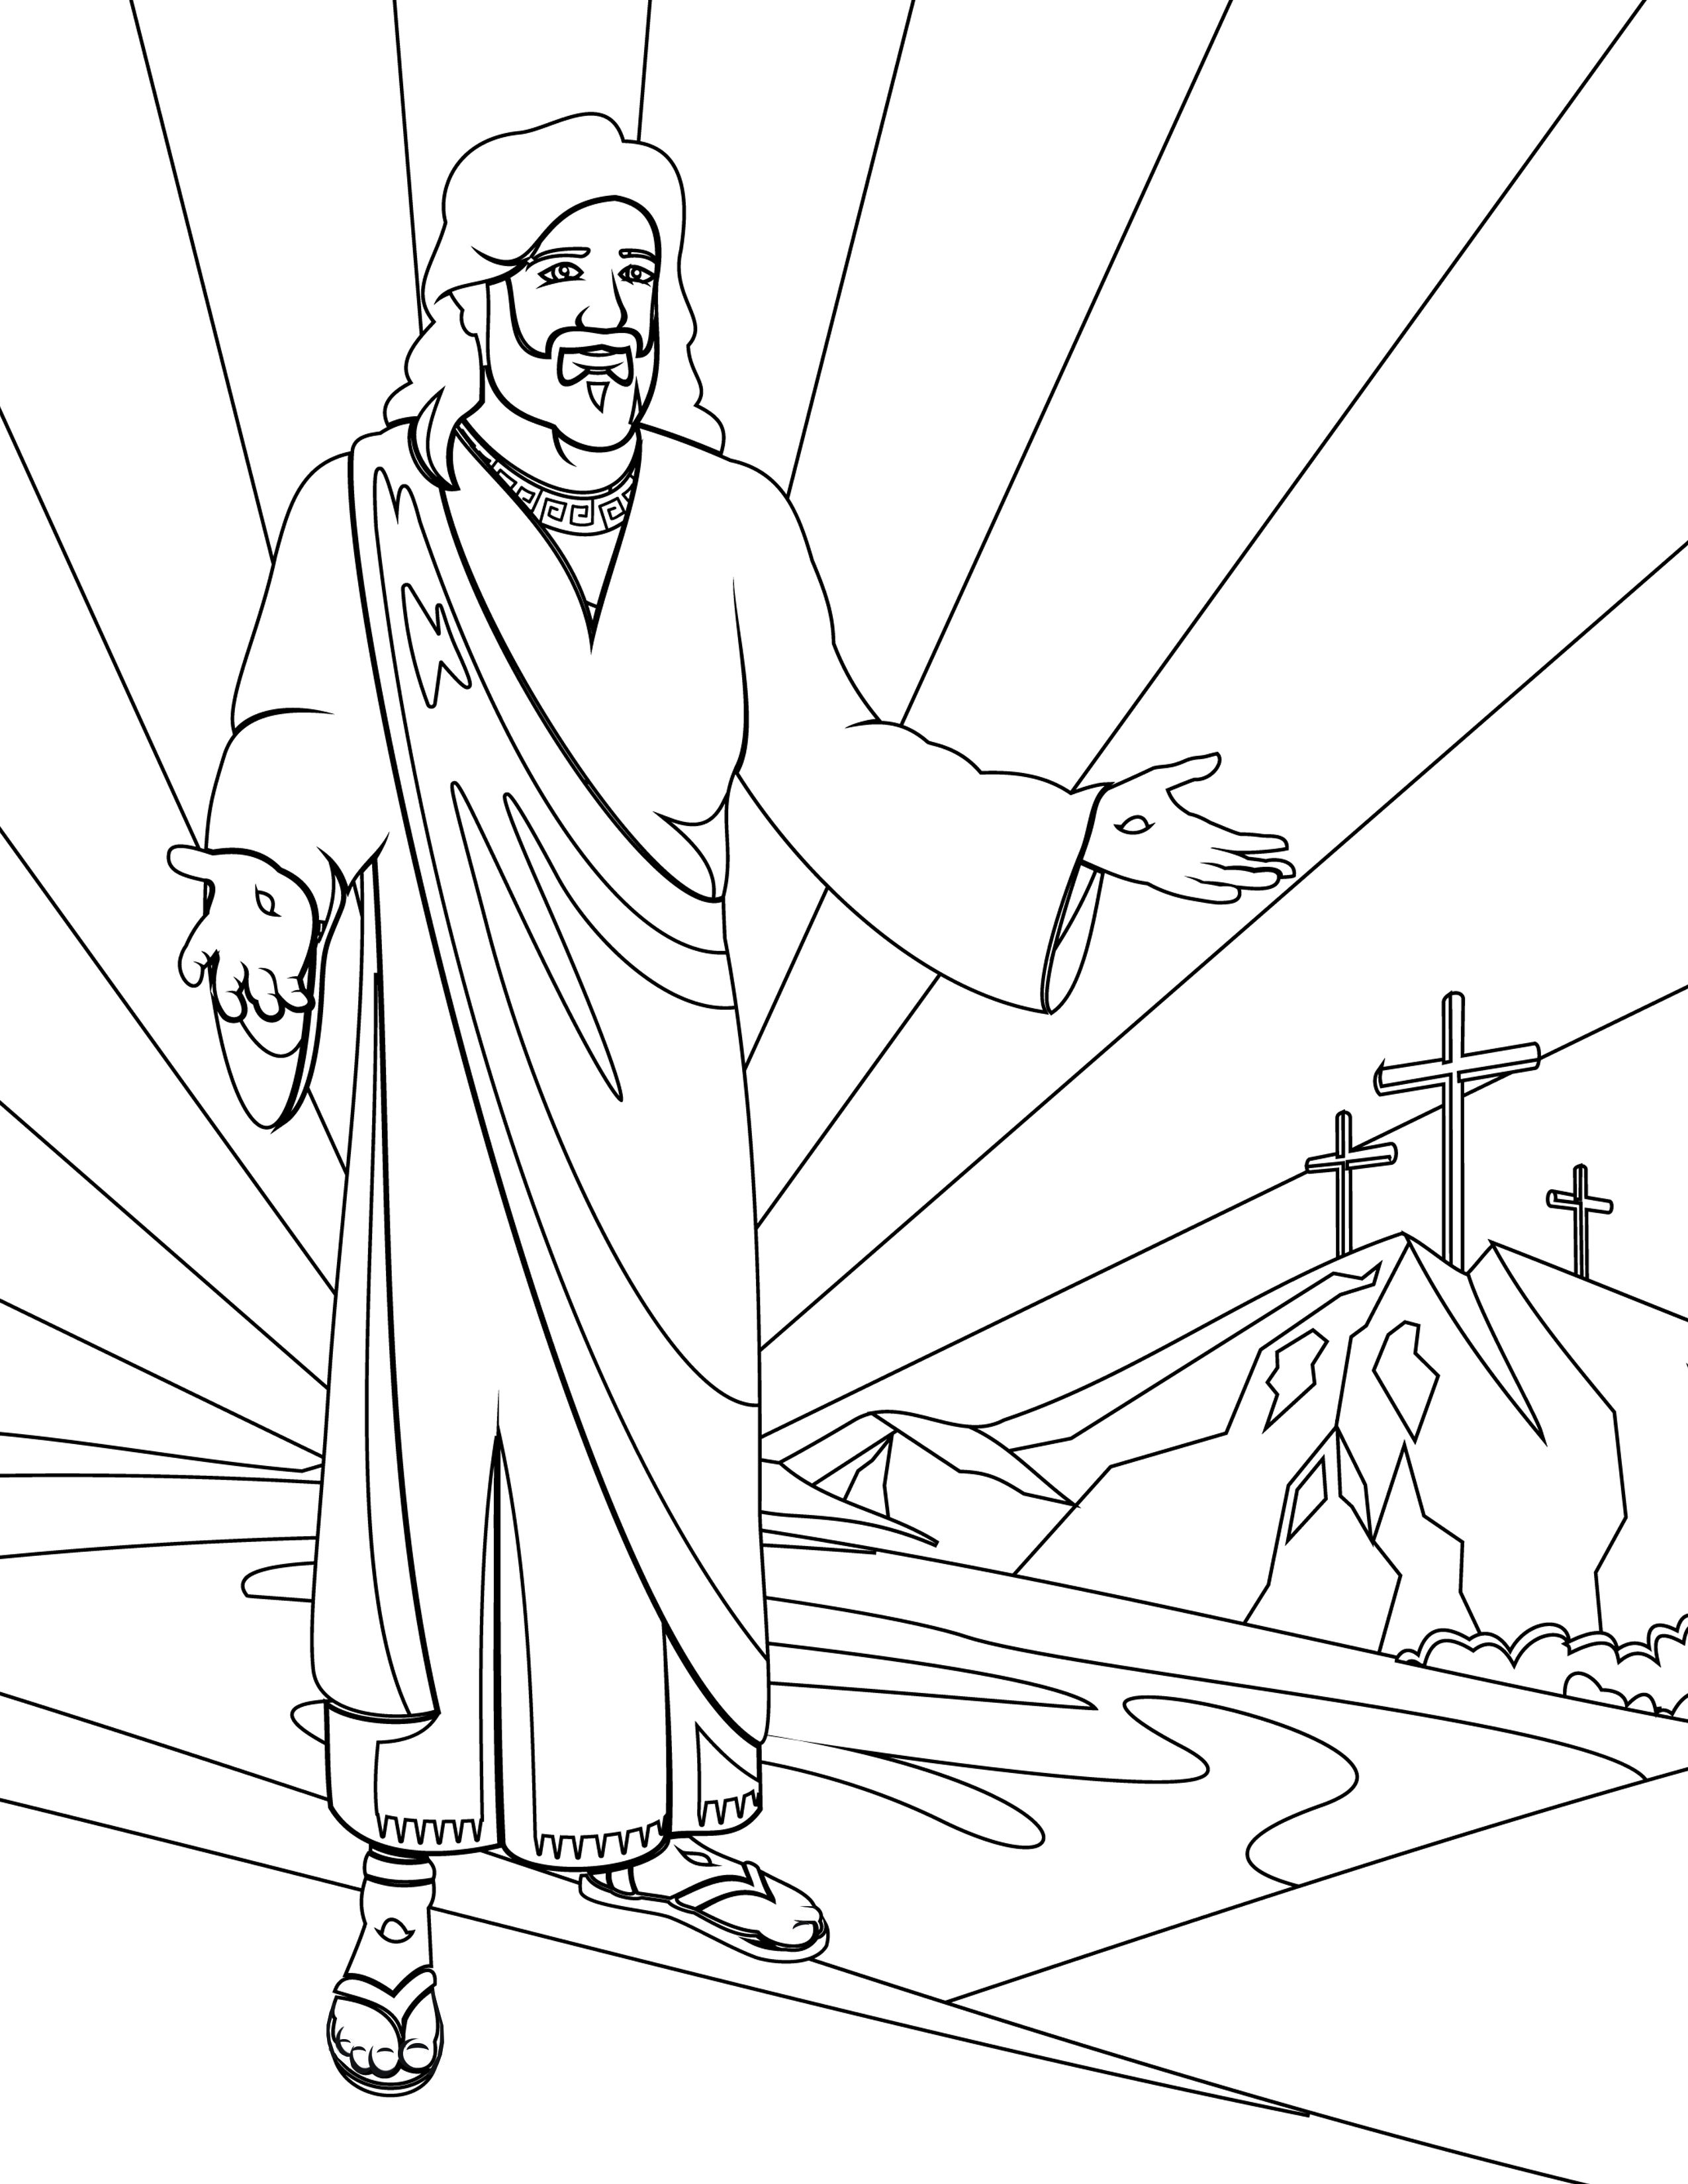 Printable resurrection picture for preschool starlight bible story